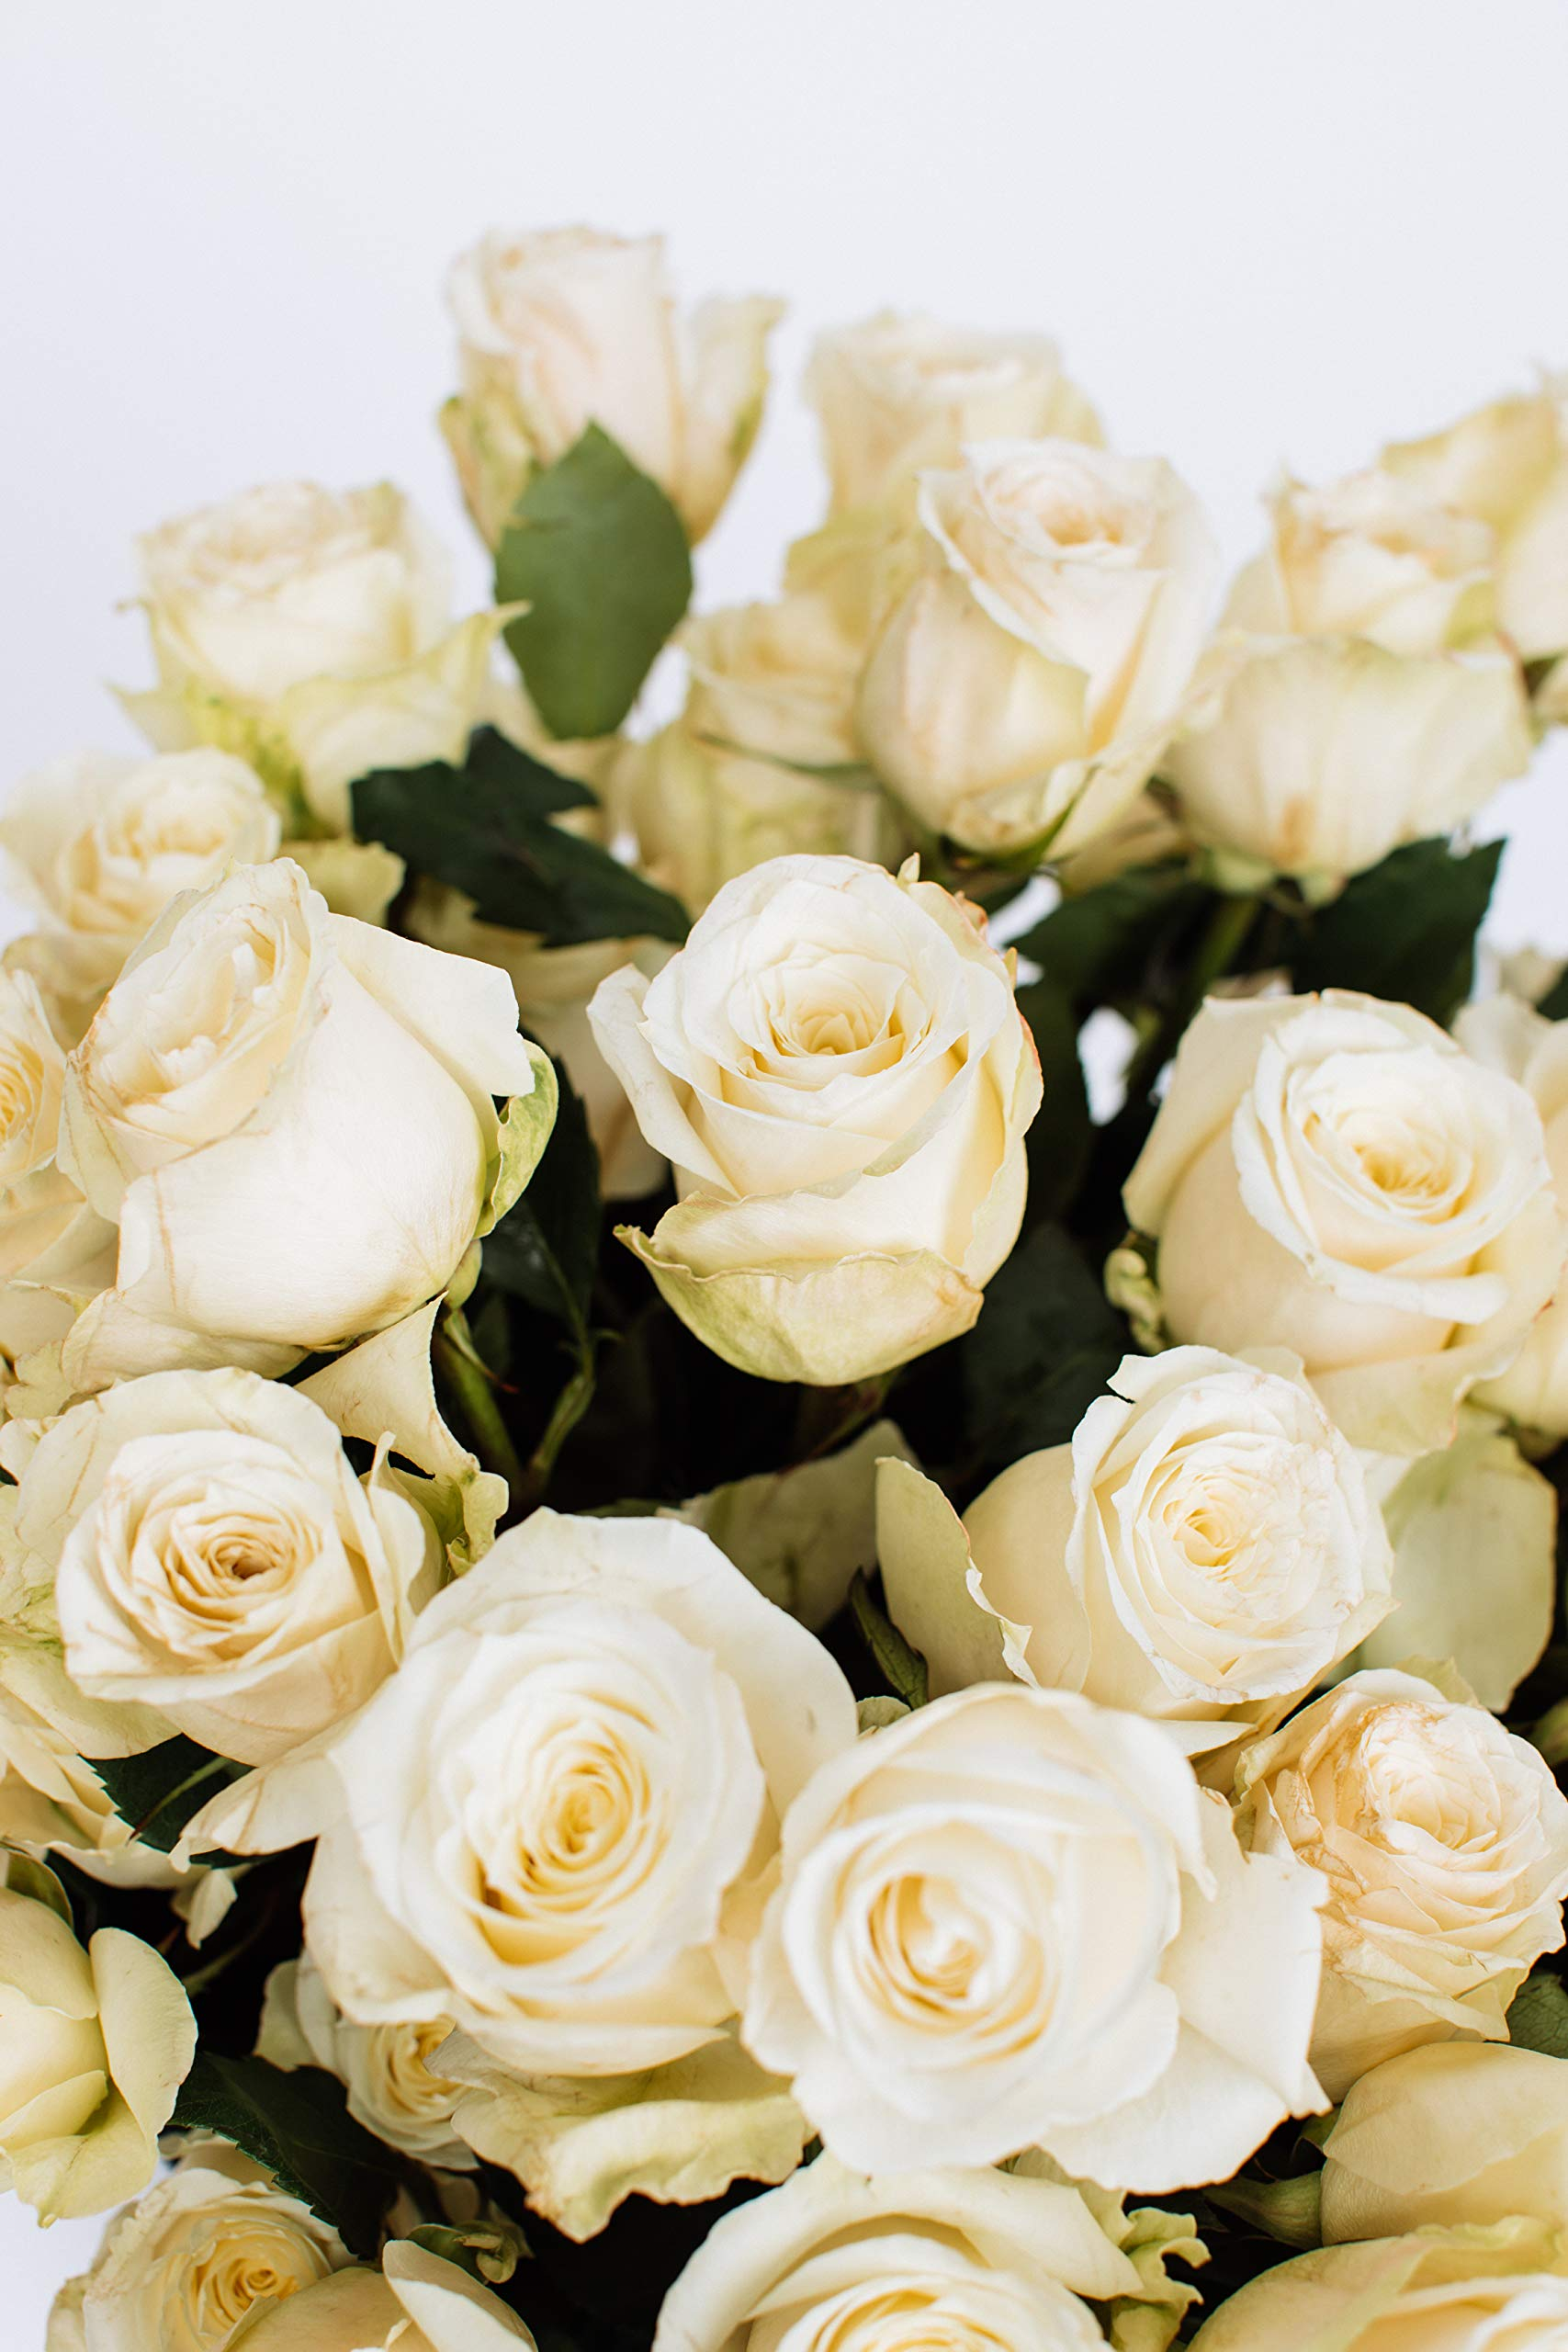 Benchmark Bouquets 50 White Roses Farm Direct (Fresh Cut Flowers) by Benchmark Bouquets (Image #4)